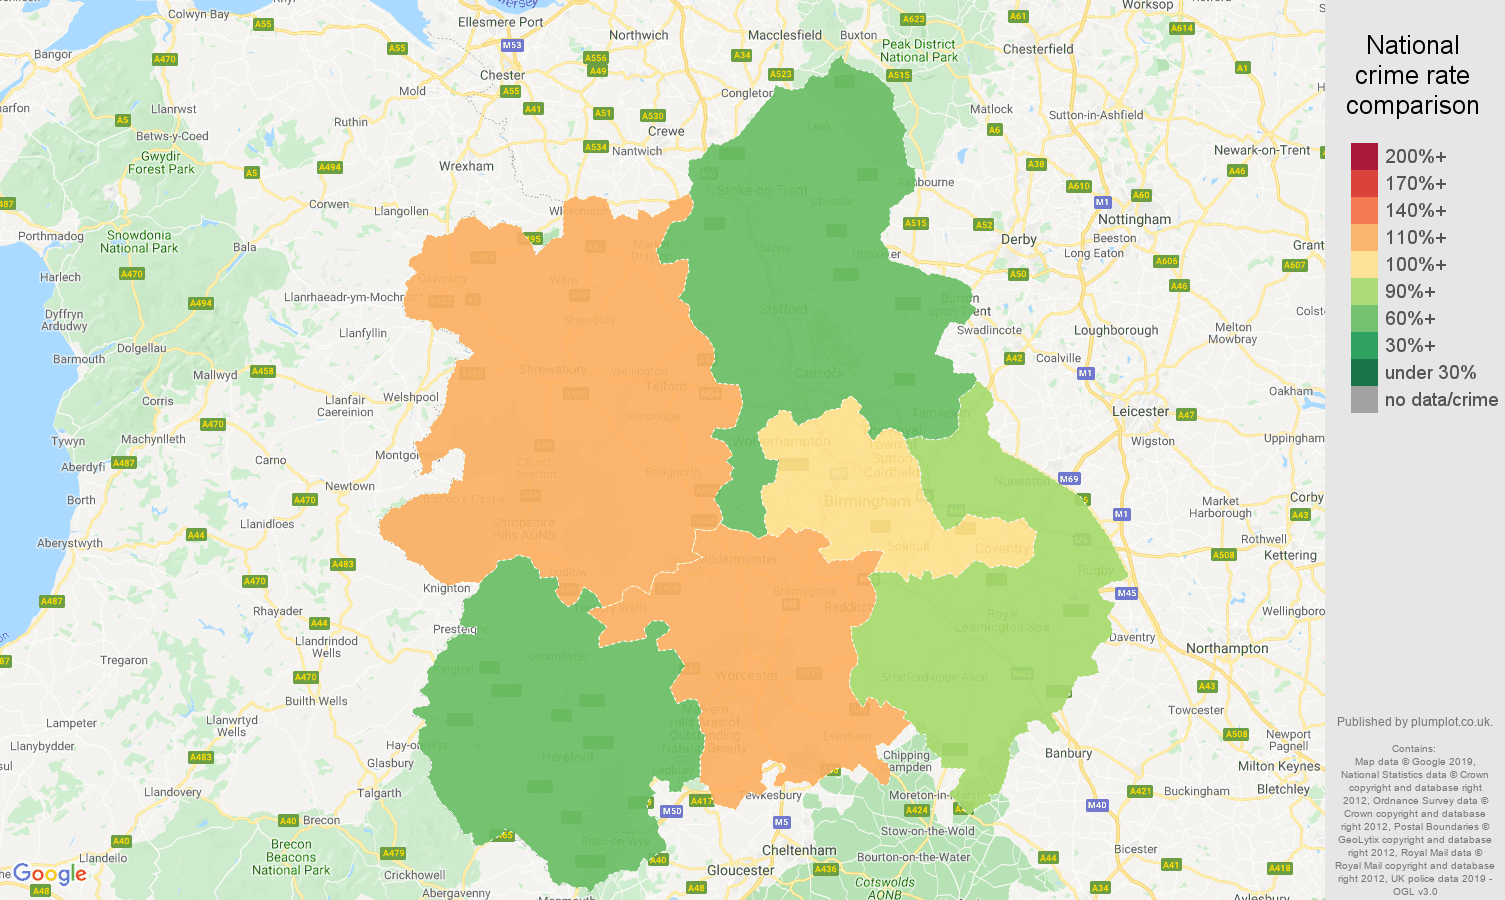 West Midlands shoplifting crime rate comparison map